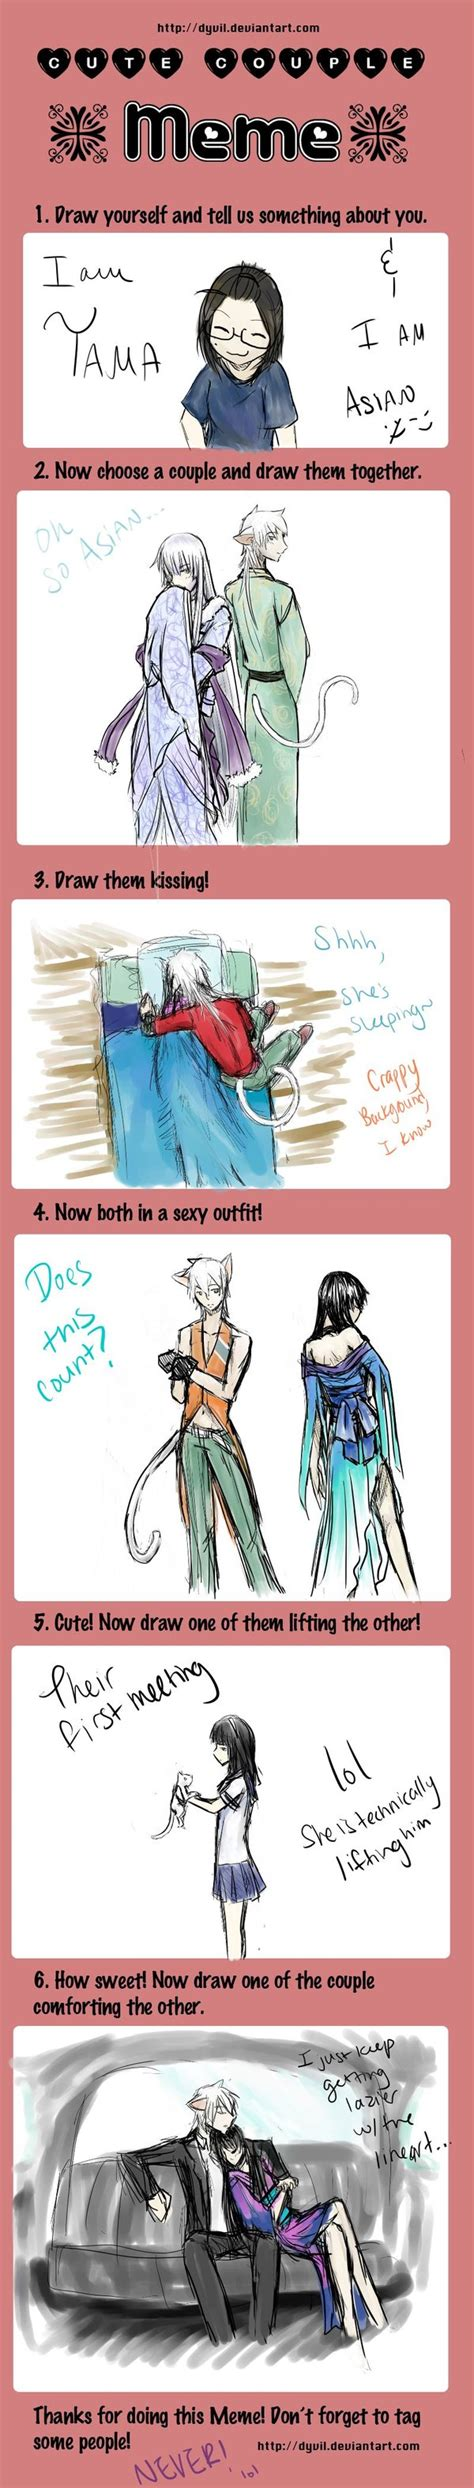 Cute Couple Meme - cute couple meme sayaxkiyoshi by tamakichi on deviantart